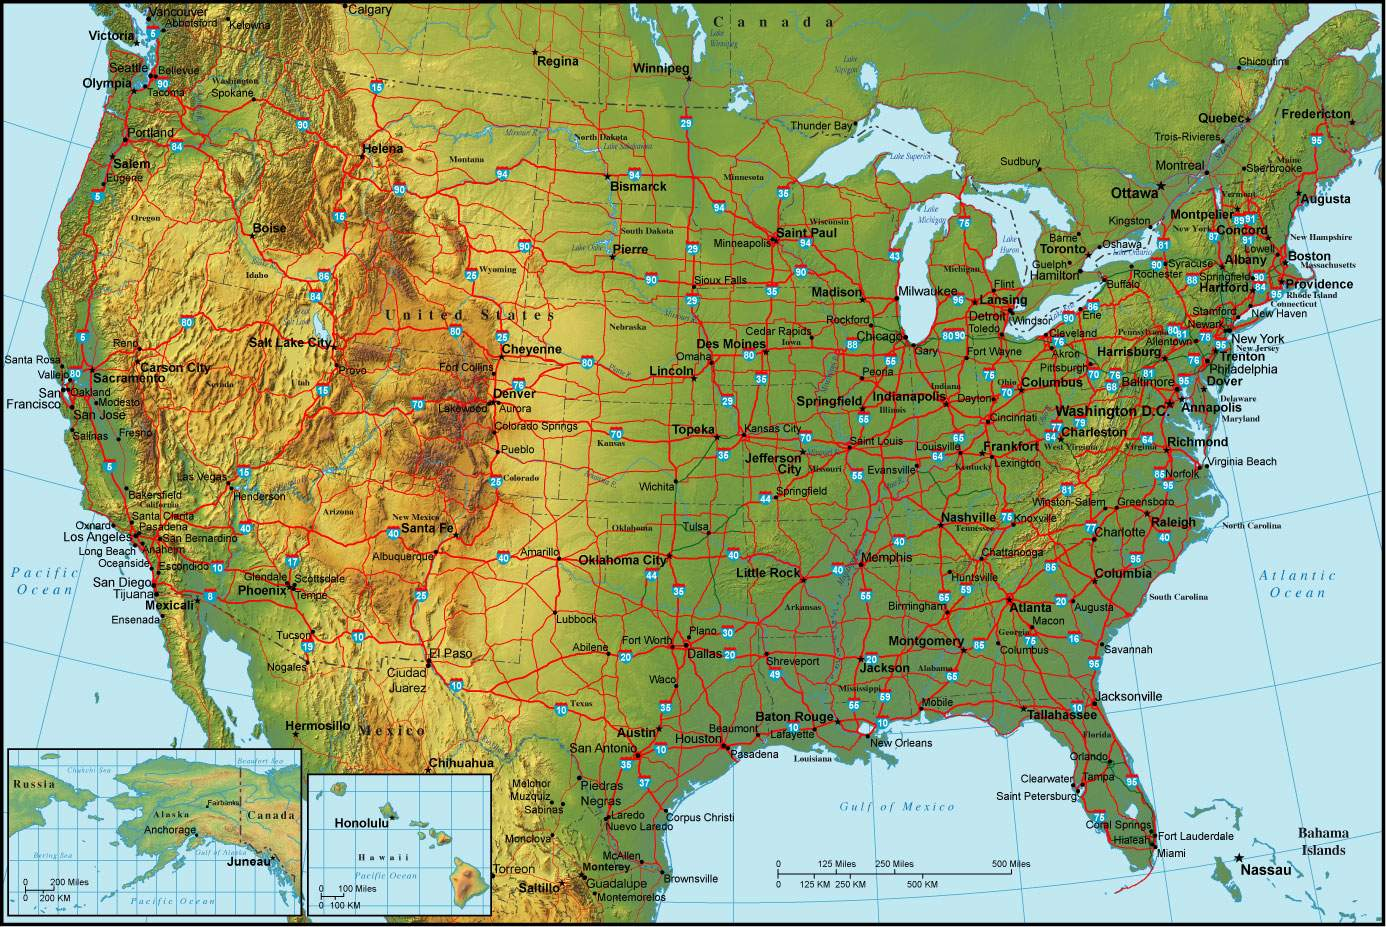 US Elevation And Elevation Maps Of Cities Topographic Map Contour - Us states by elevation